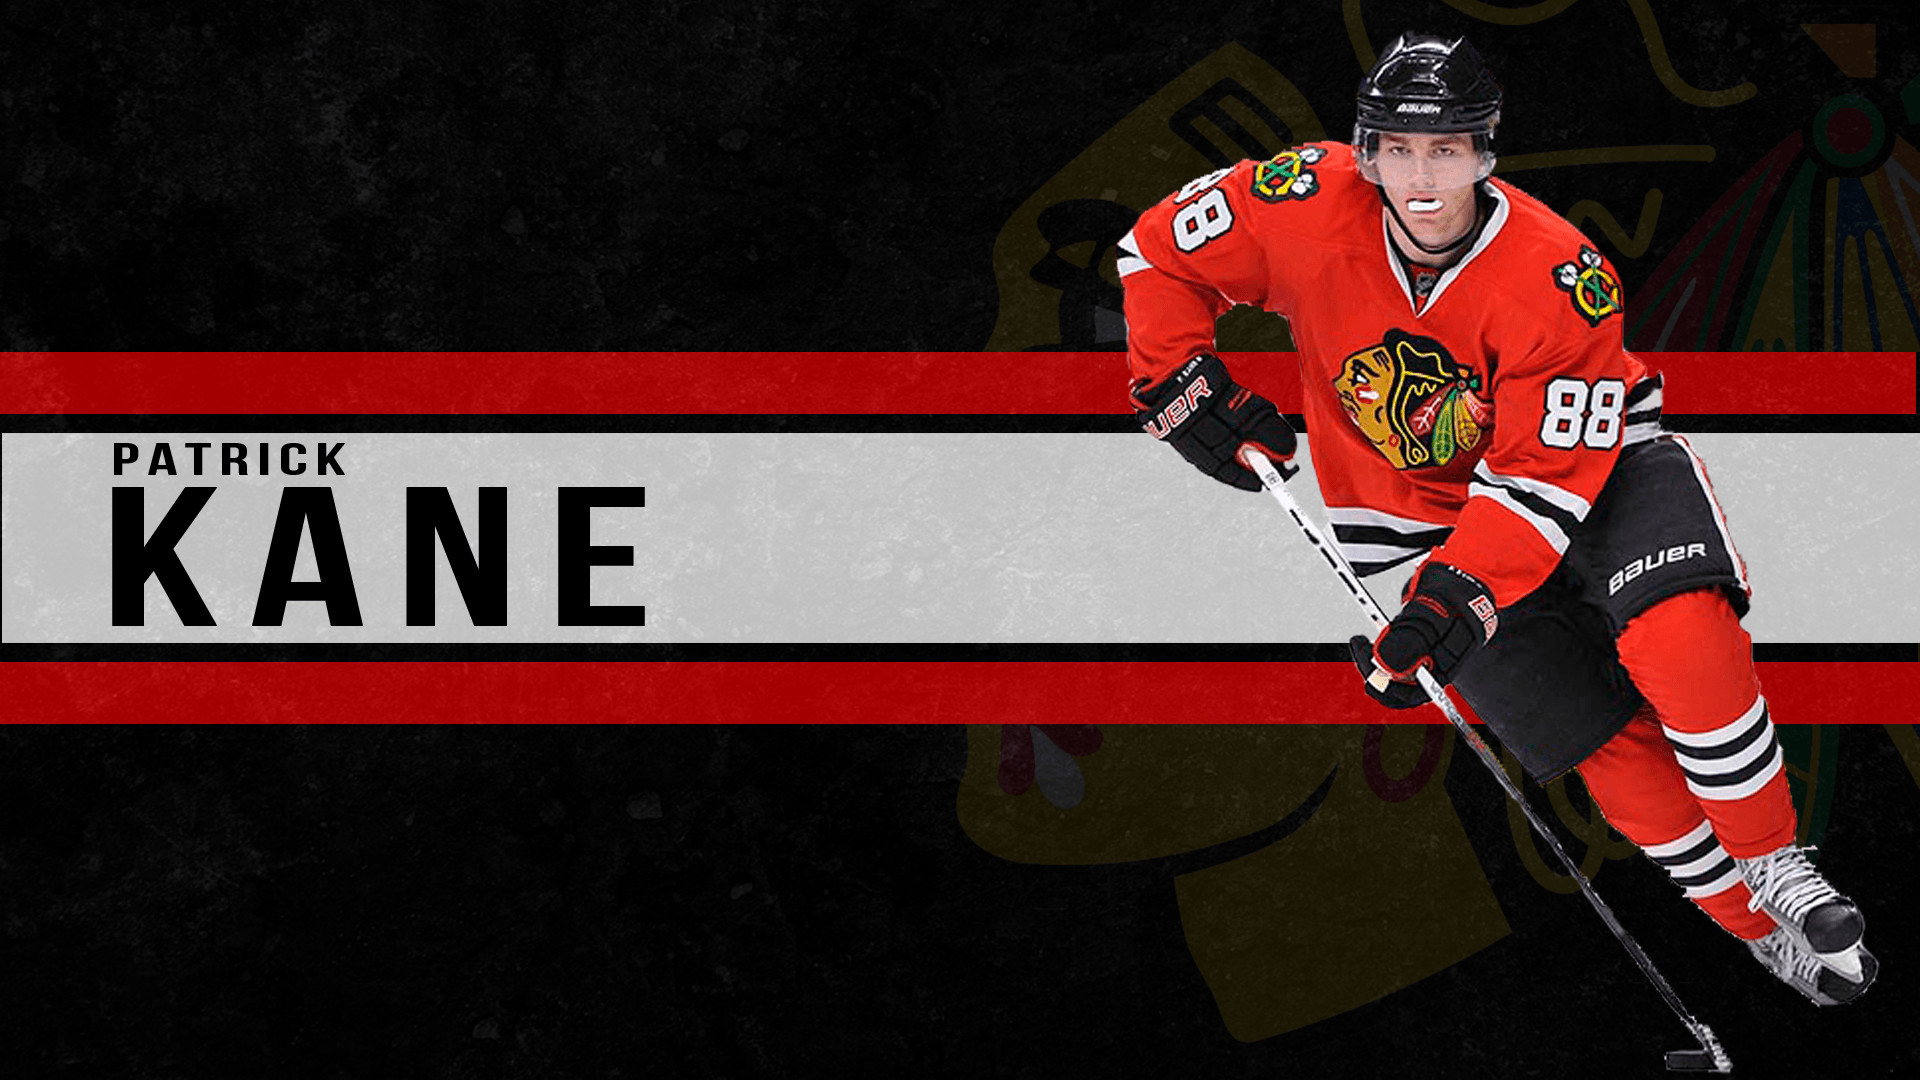 1920x1080 Patrick Kane Wallpapers Images Photos Pictures Backgrounds